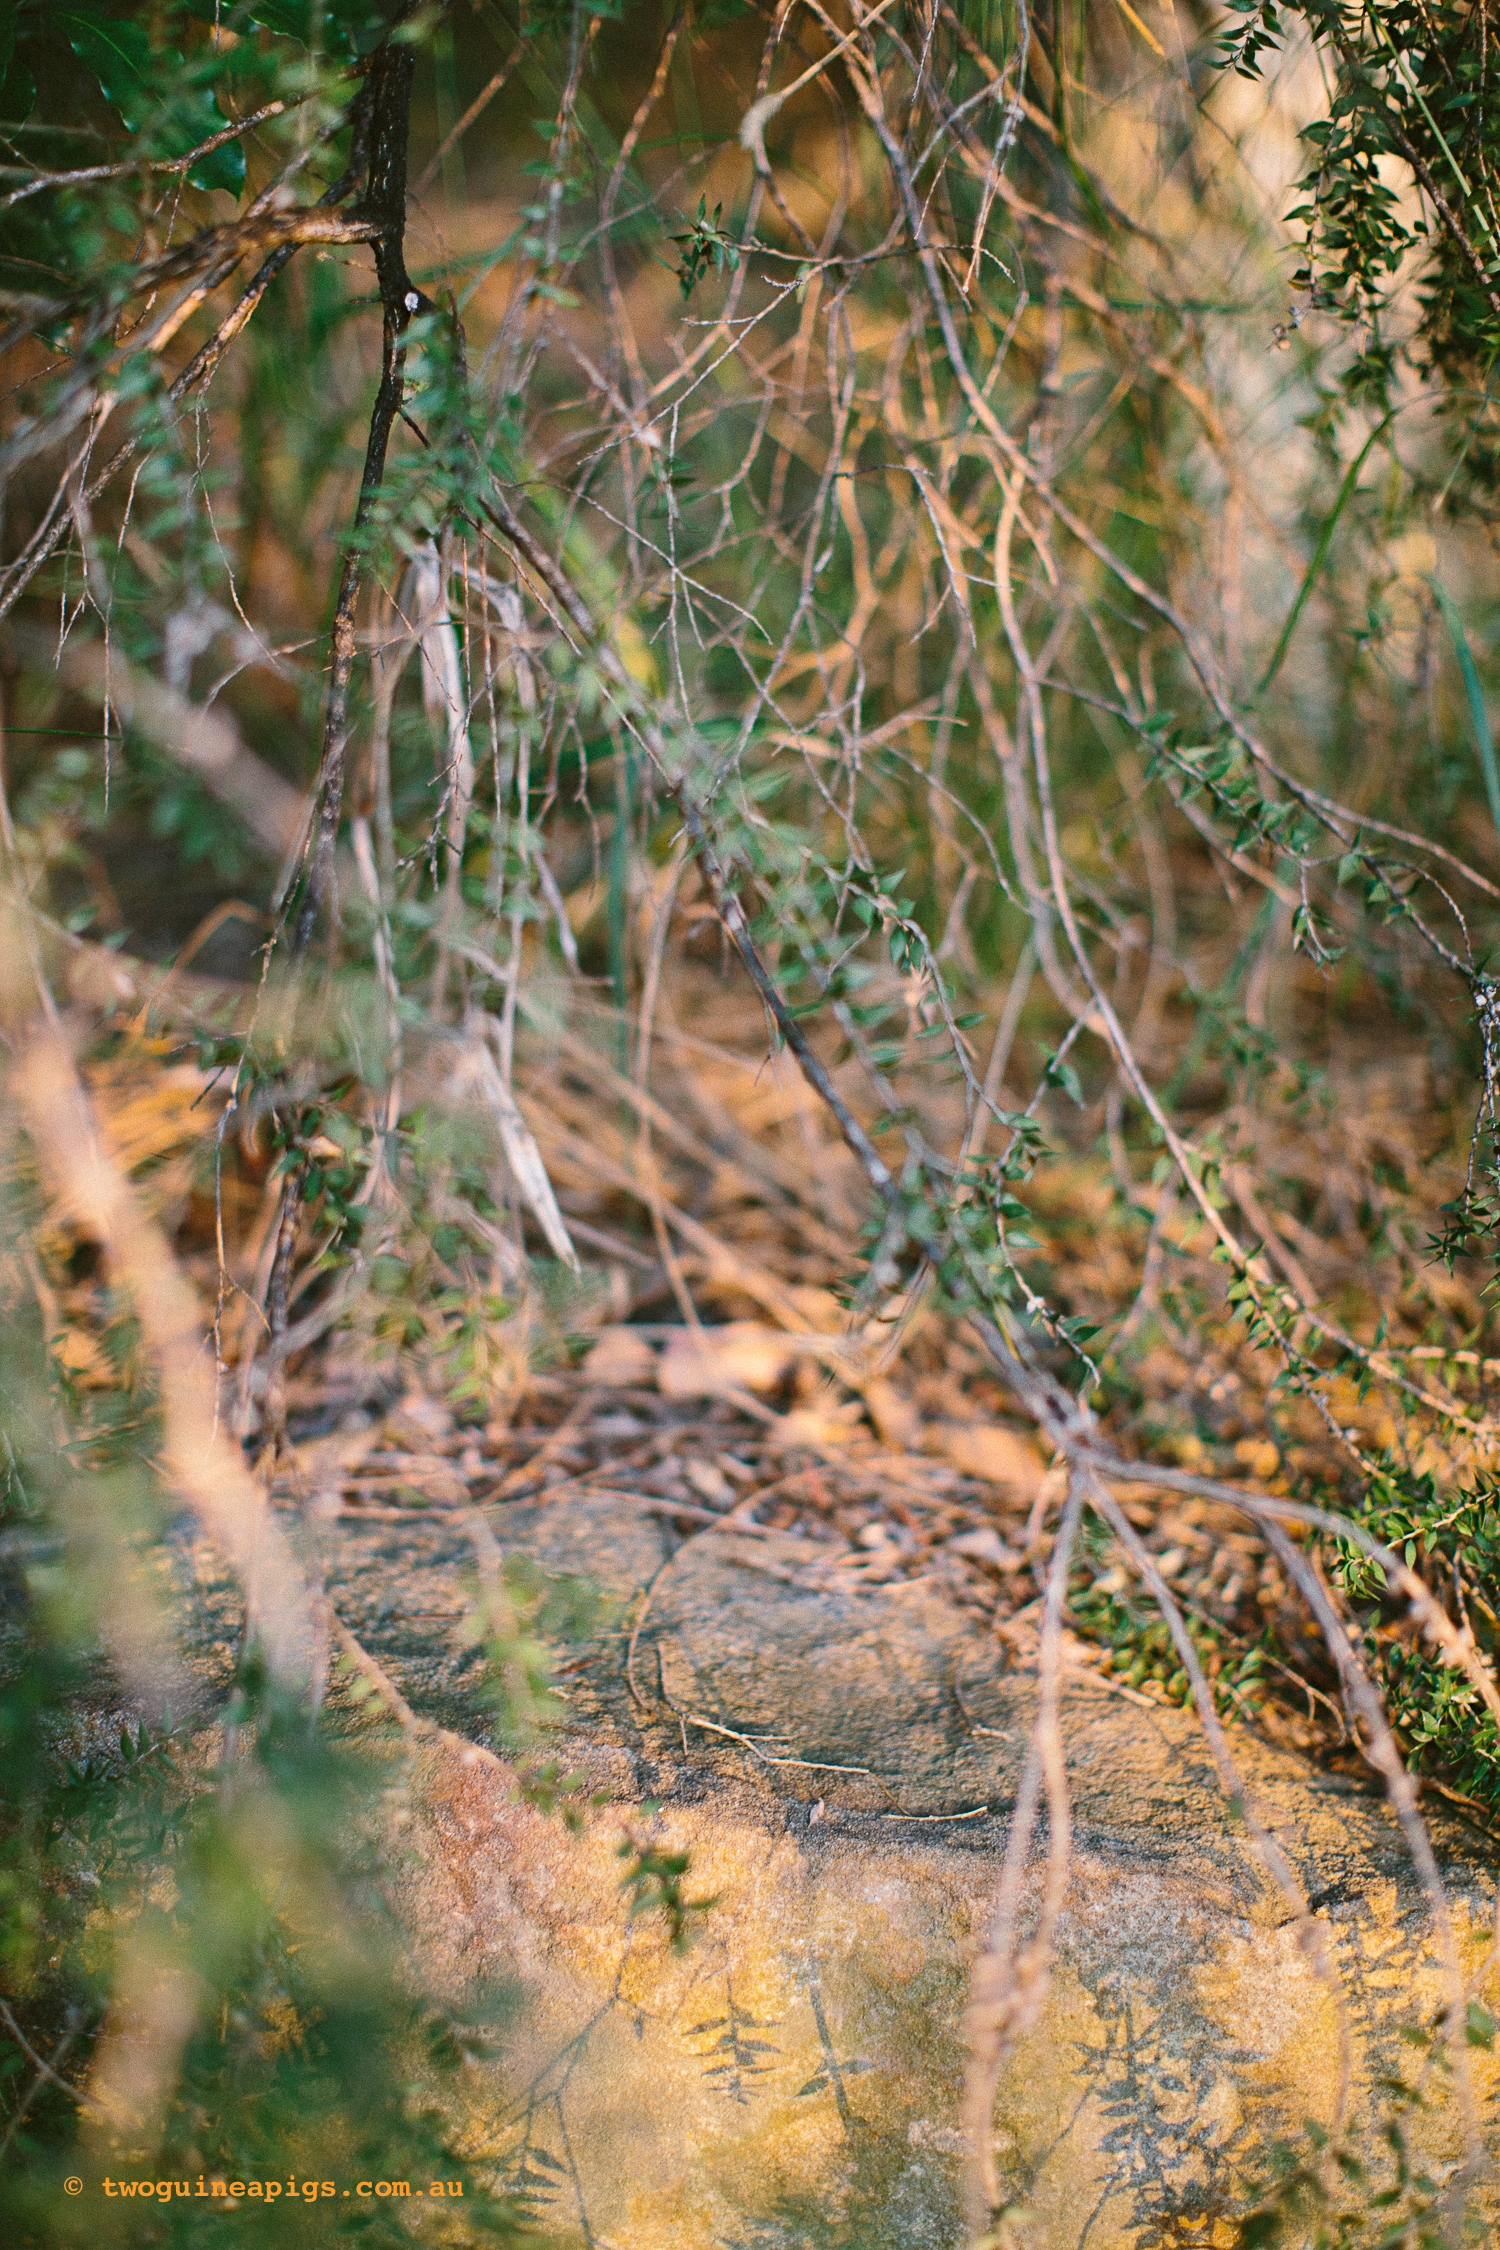 twoguineapigs_pet_photography_bells_head_reserve_wollstonecraft_location_scout_1500-48.jpg